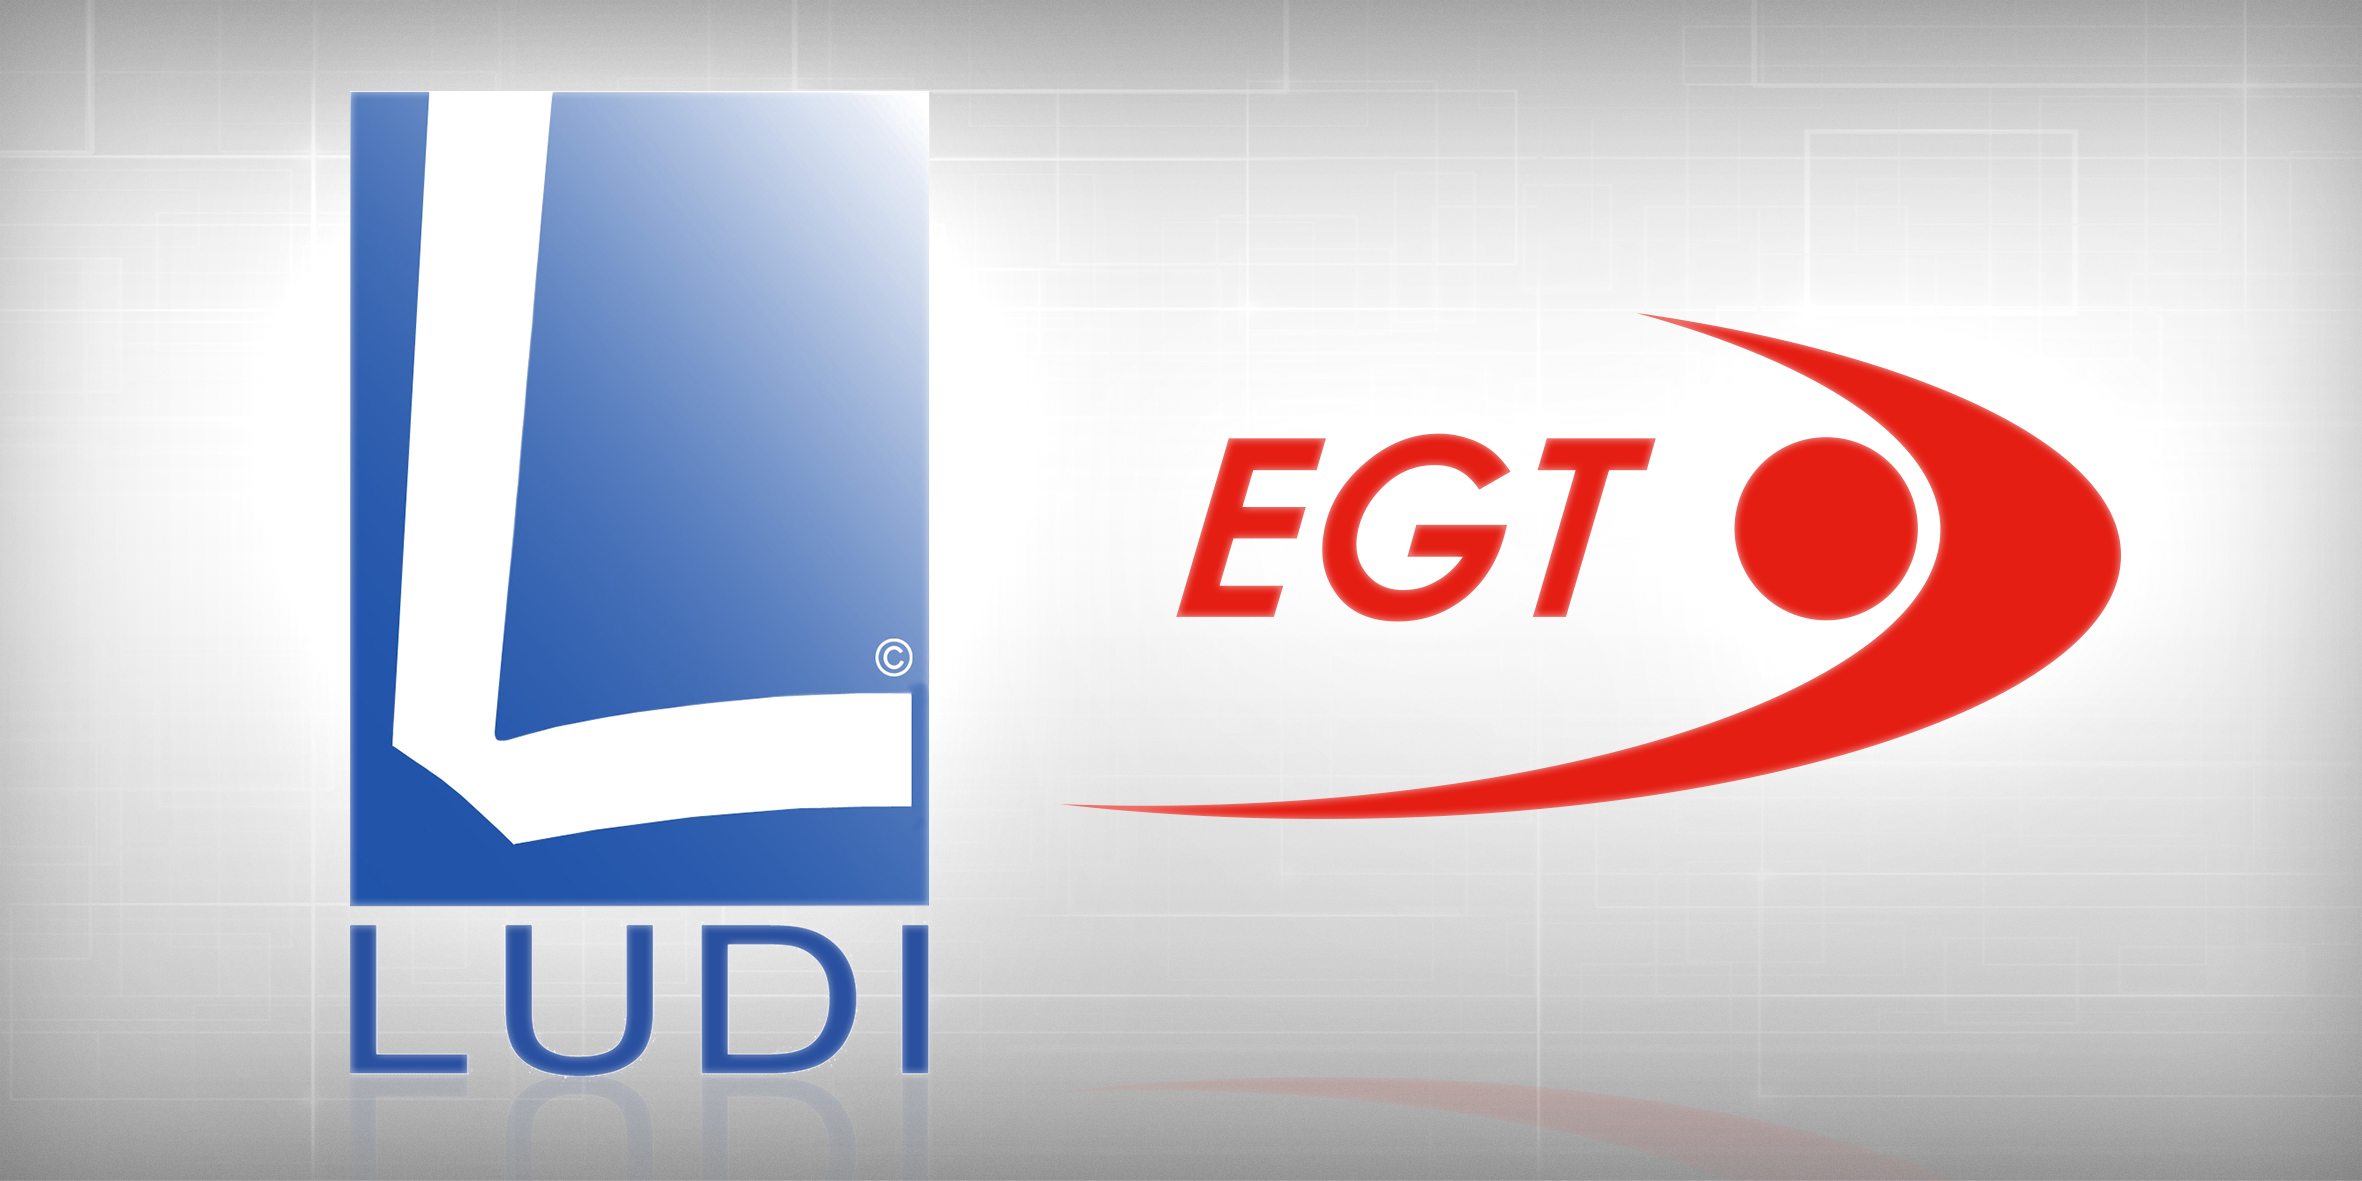 EGT signs distributor agreement with Ludi SFM for France